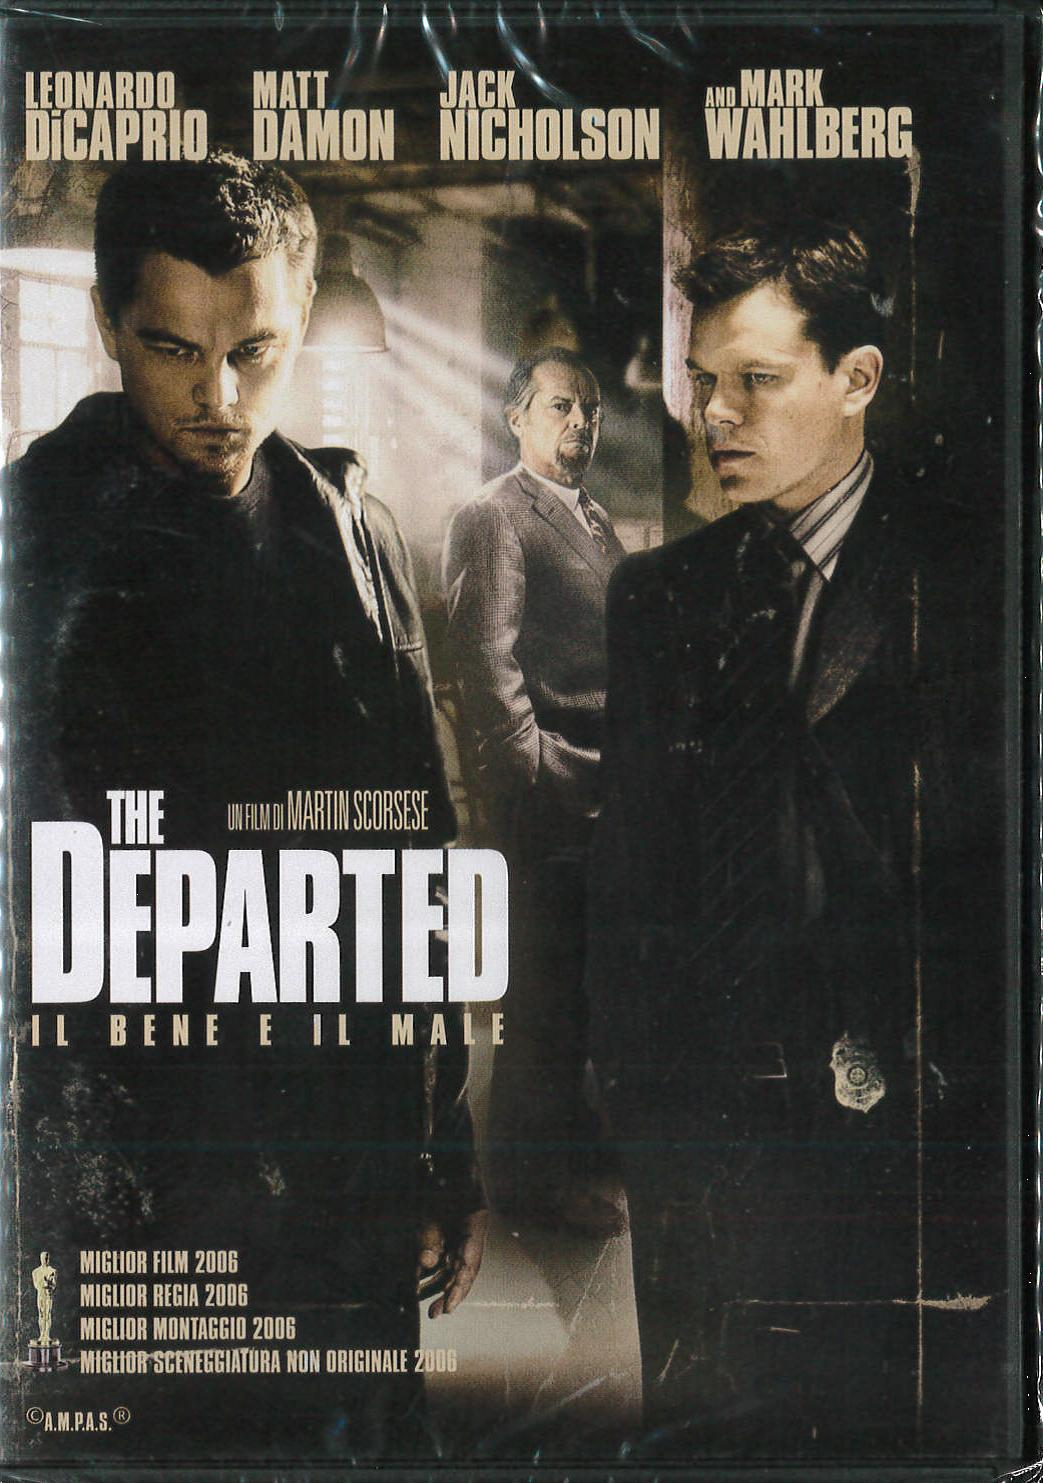 THE DEPARTED - IL BENE E IL MALE (DVD)